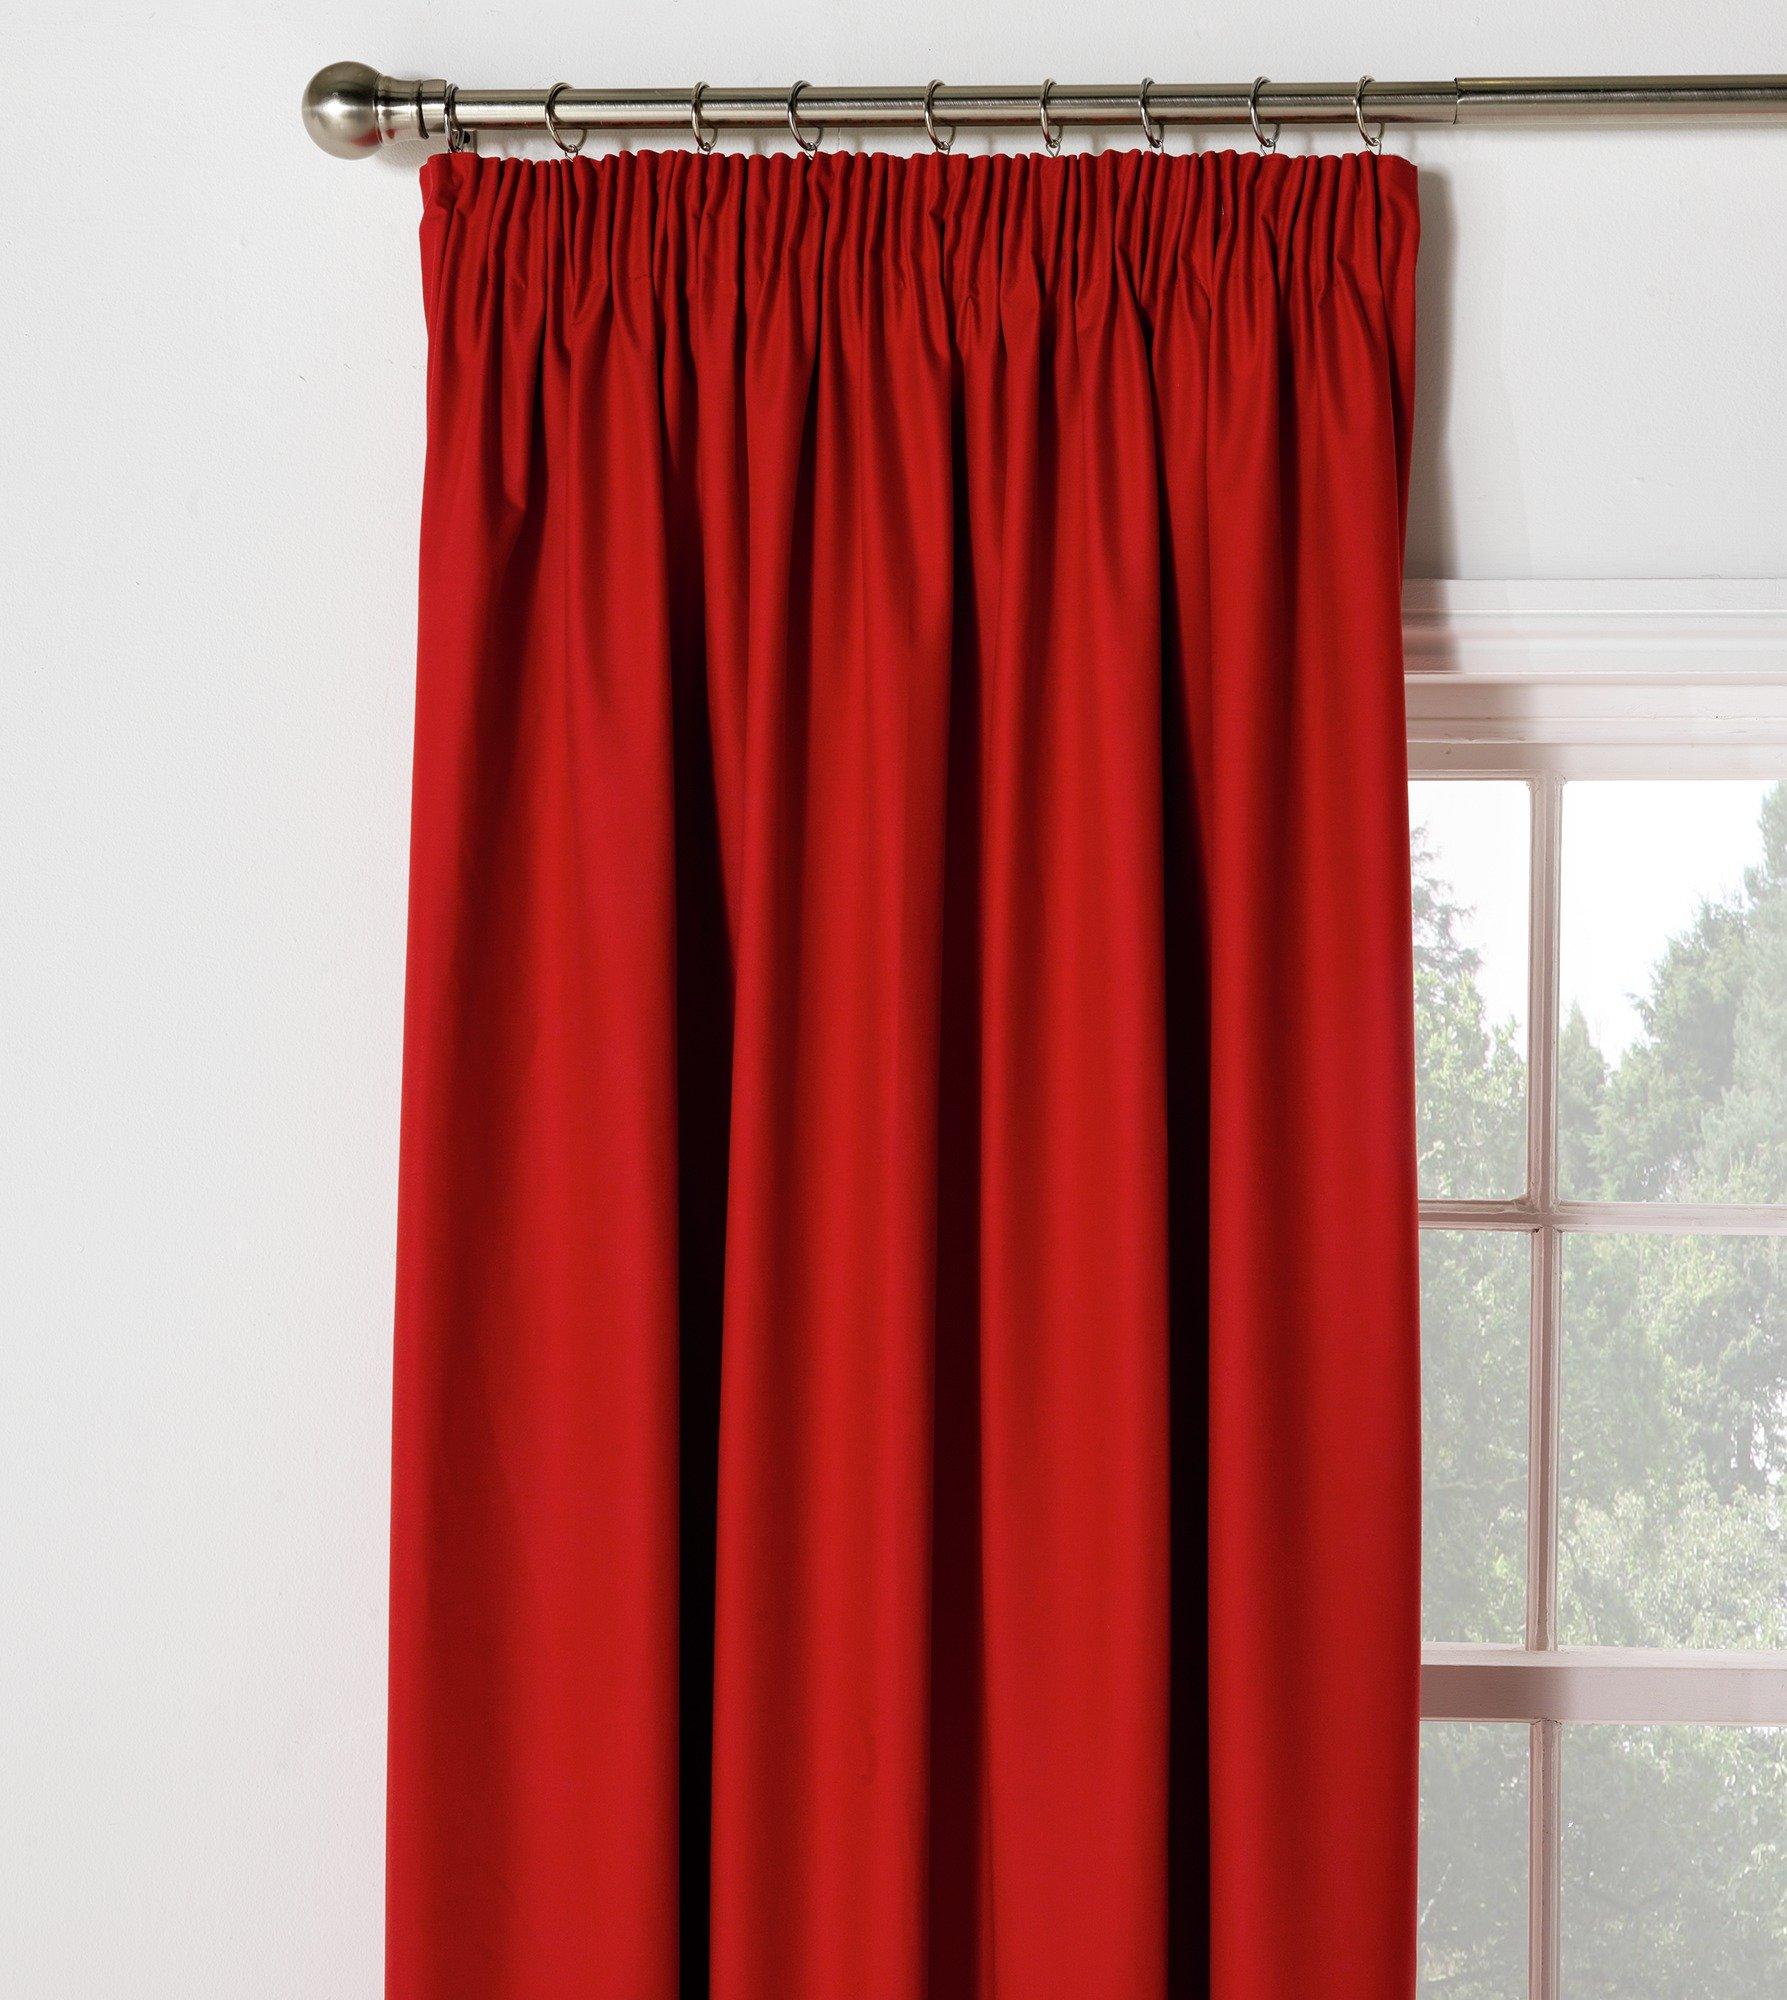 ColourMatch Blackout Thermal Curtain - 168x183cm - Poppy Red